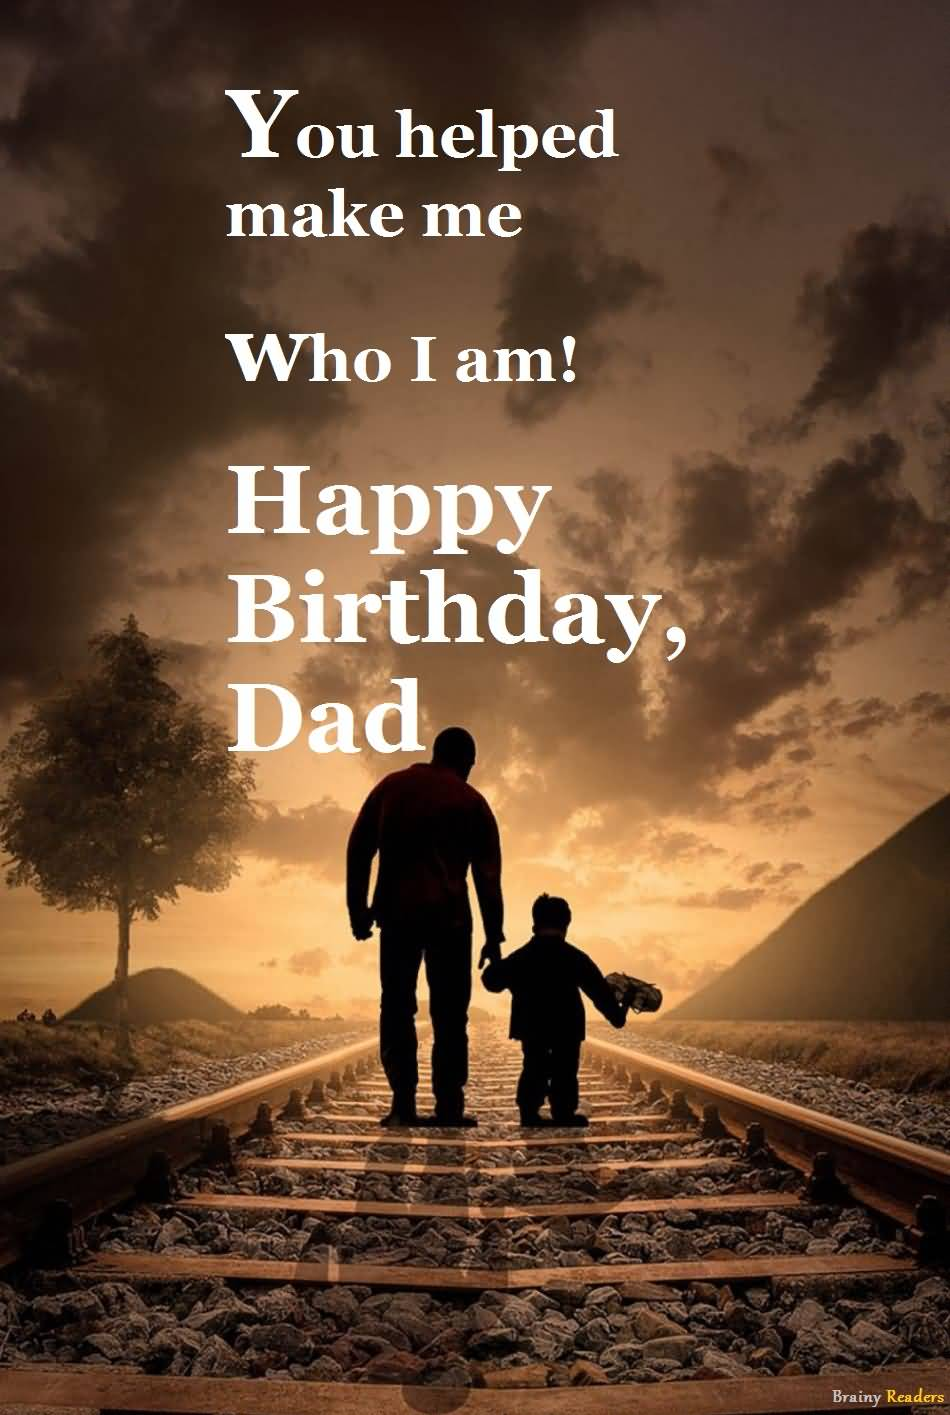 30 Fathers Birthday Quotes To Make His Day Special And Enjoyable Brainy Readers